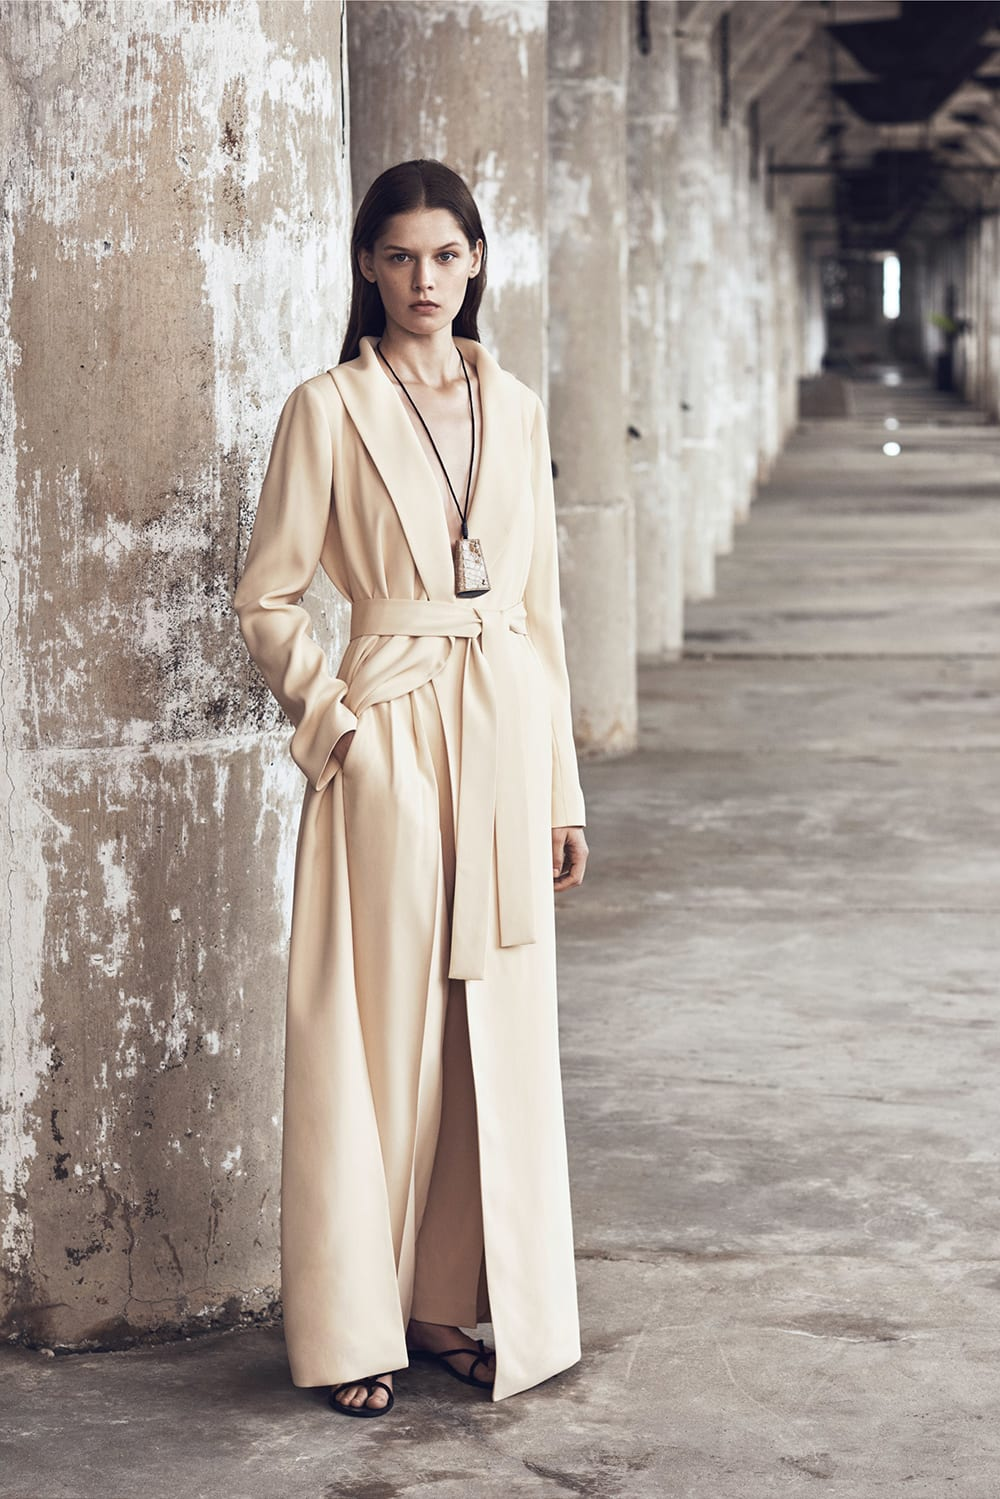 Style&Minimalism | Collections | The Row Resort '16 | Look 1